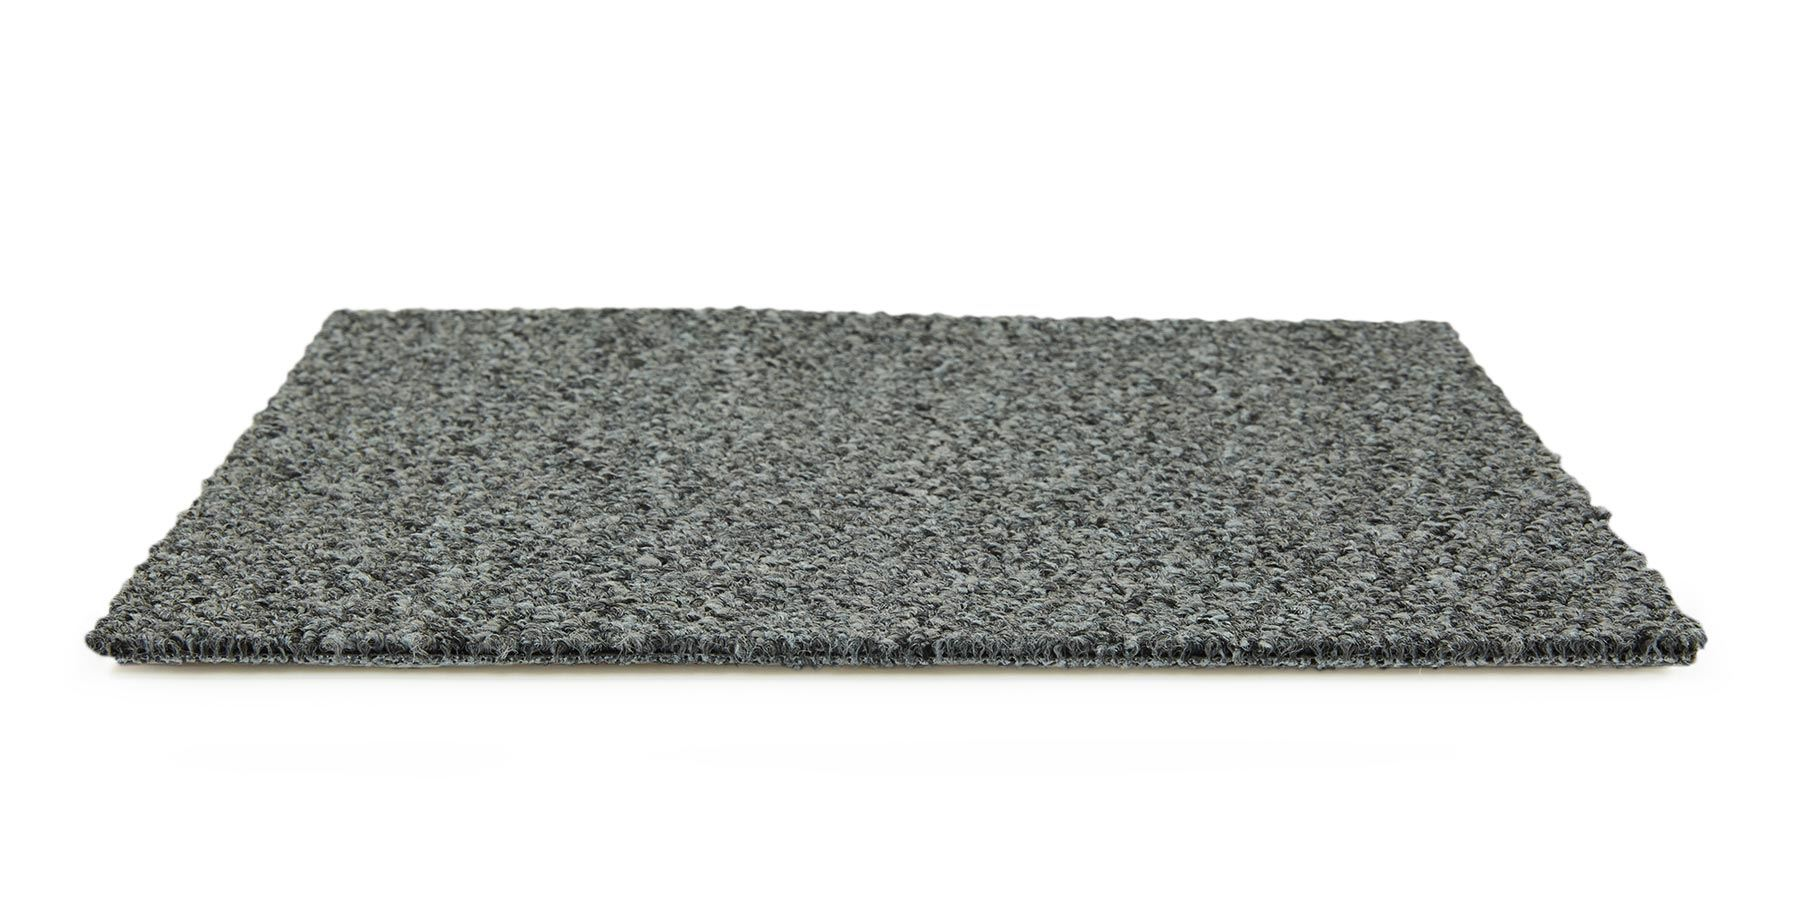 Tenbrooke II Commercial Carpet And Carpet Tile